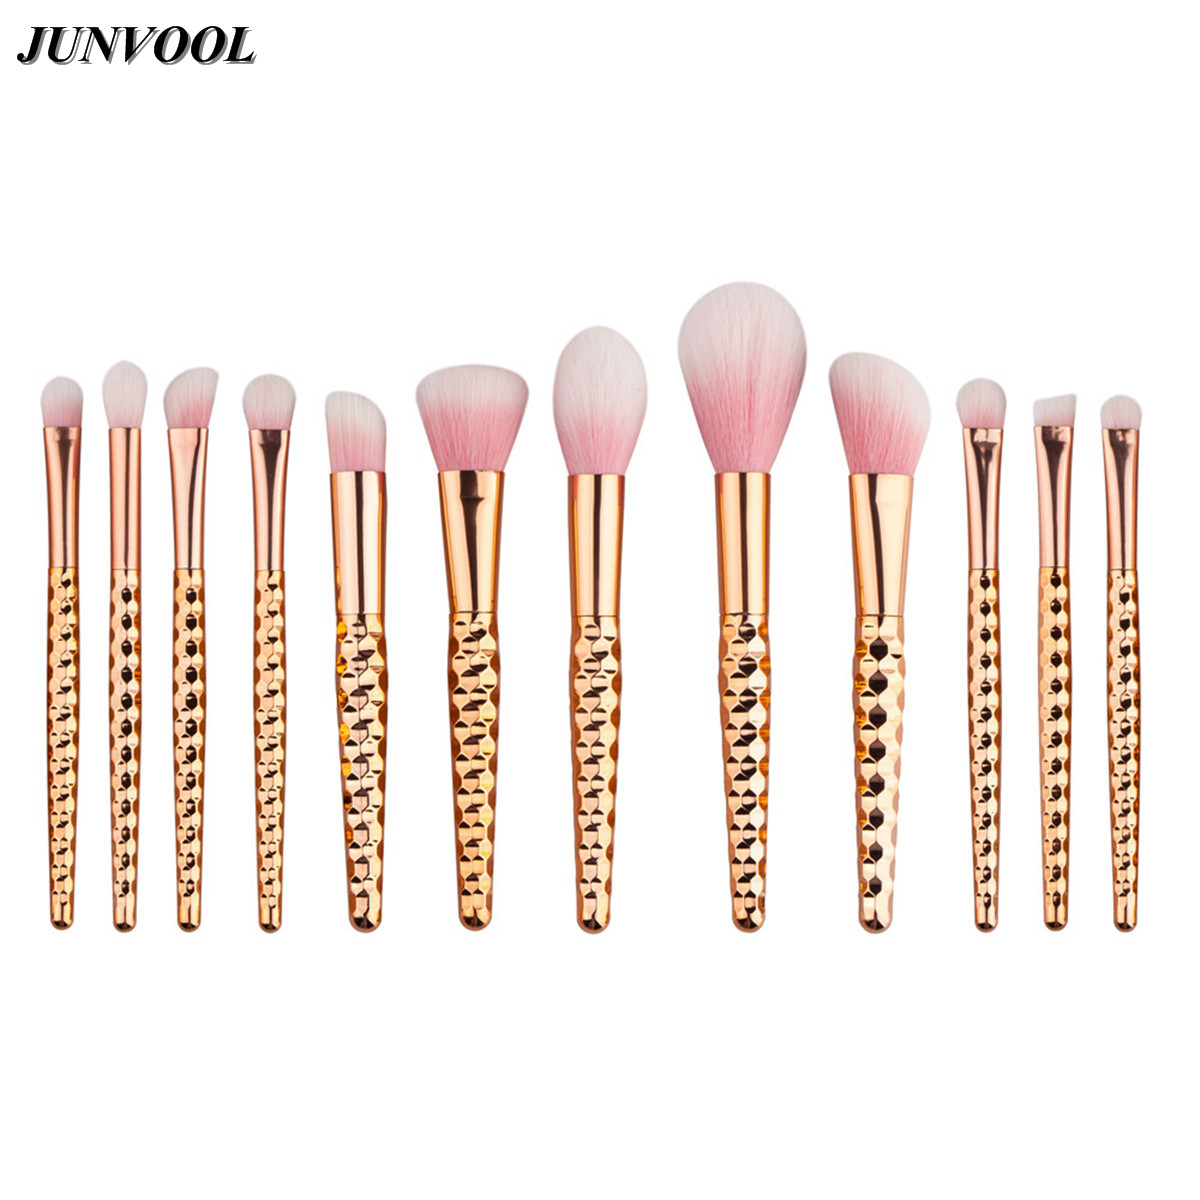 Rose Gold Make-up Brushes for Women Pack of 12Pcs Honeycomb Makeup Brush Kit Beauty for Eye Brush Eyeshadow Cosmetic Tools Set